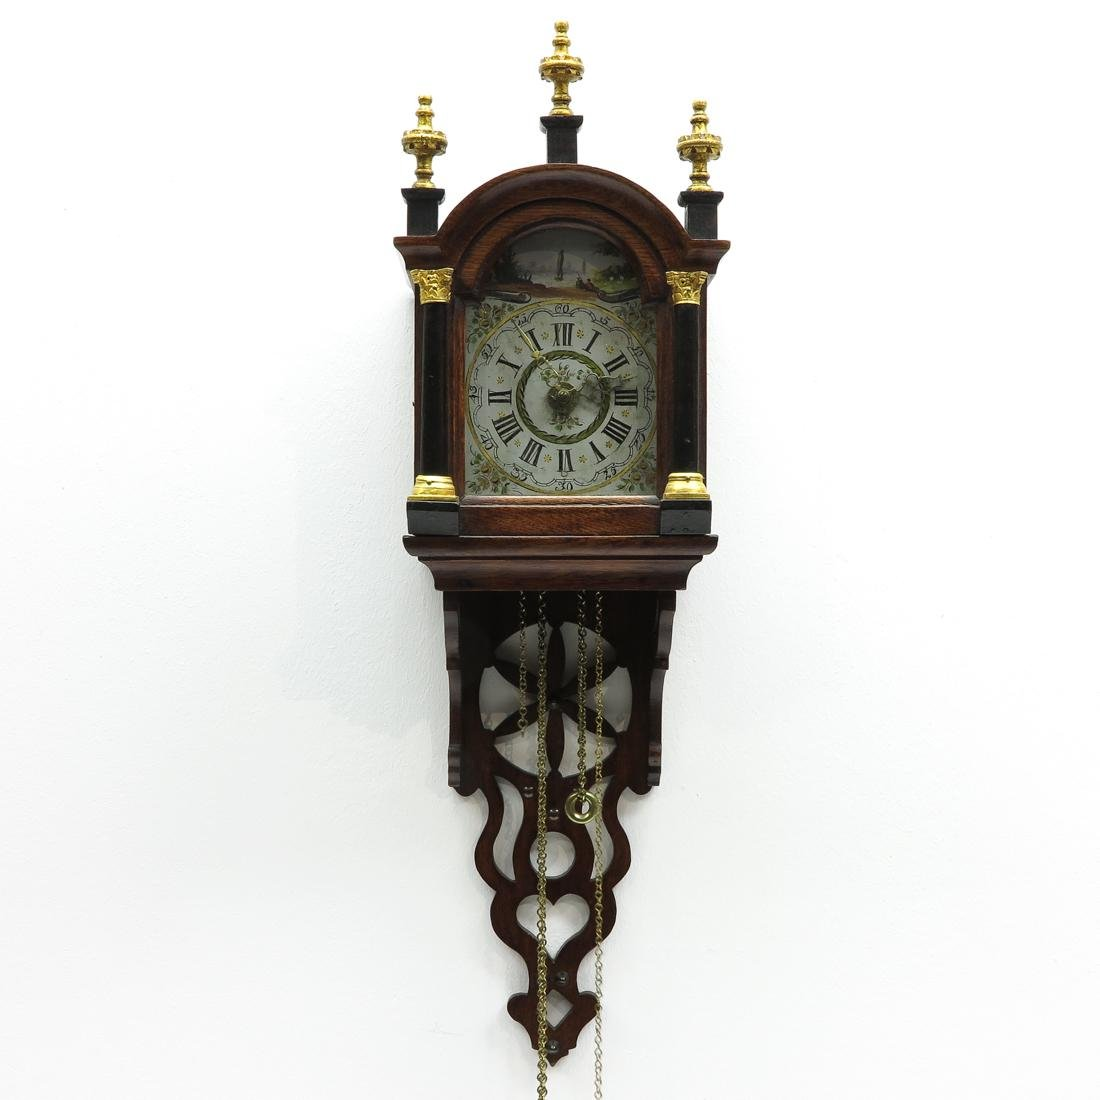 19th Century Dutch Schippertje Wall Clock